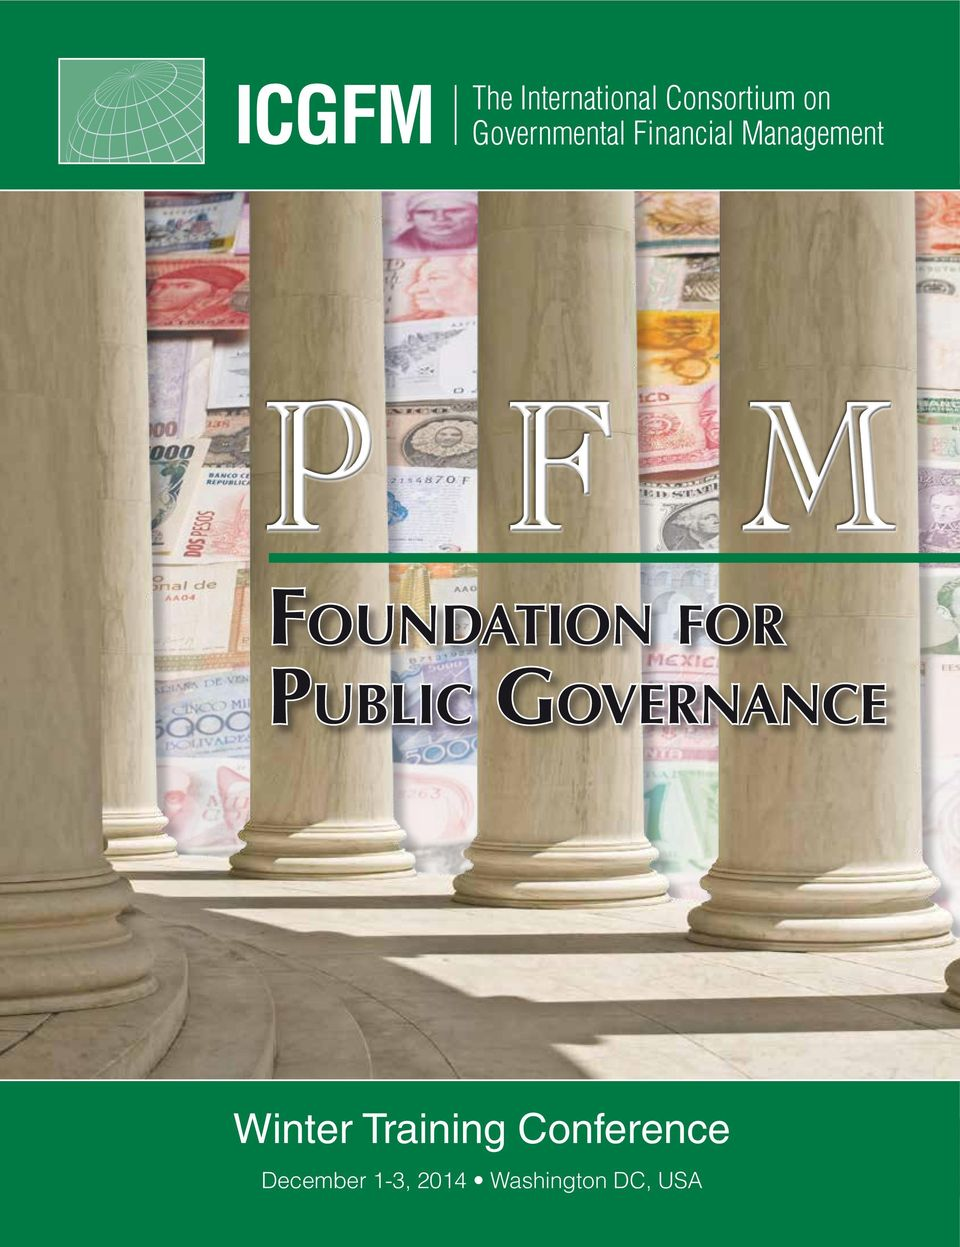 Foundation for Public Governance Winter